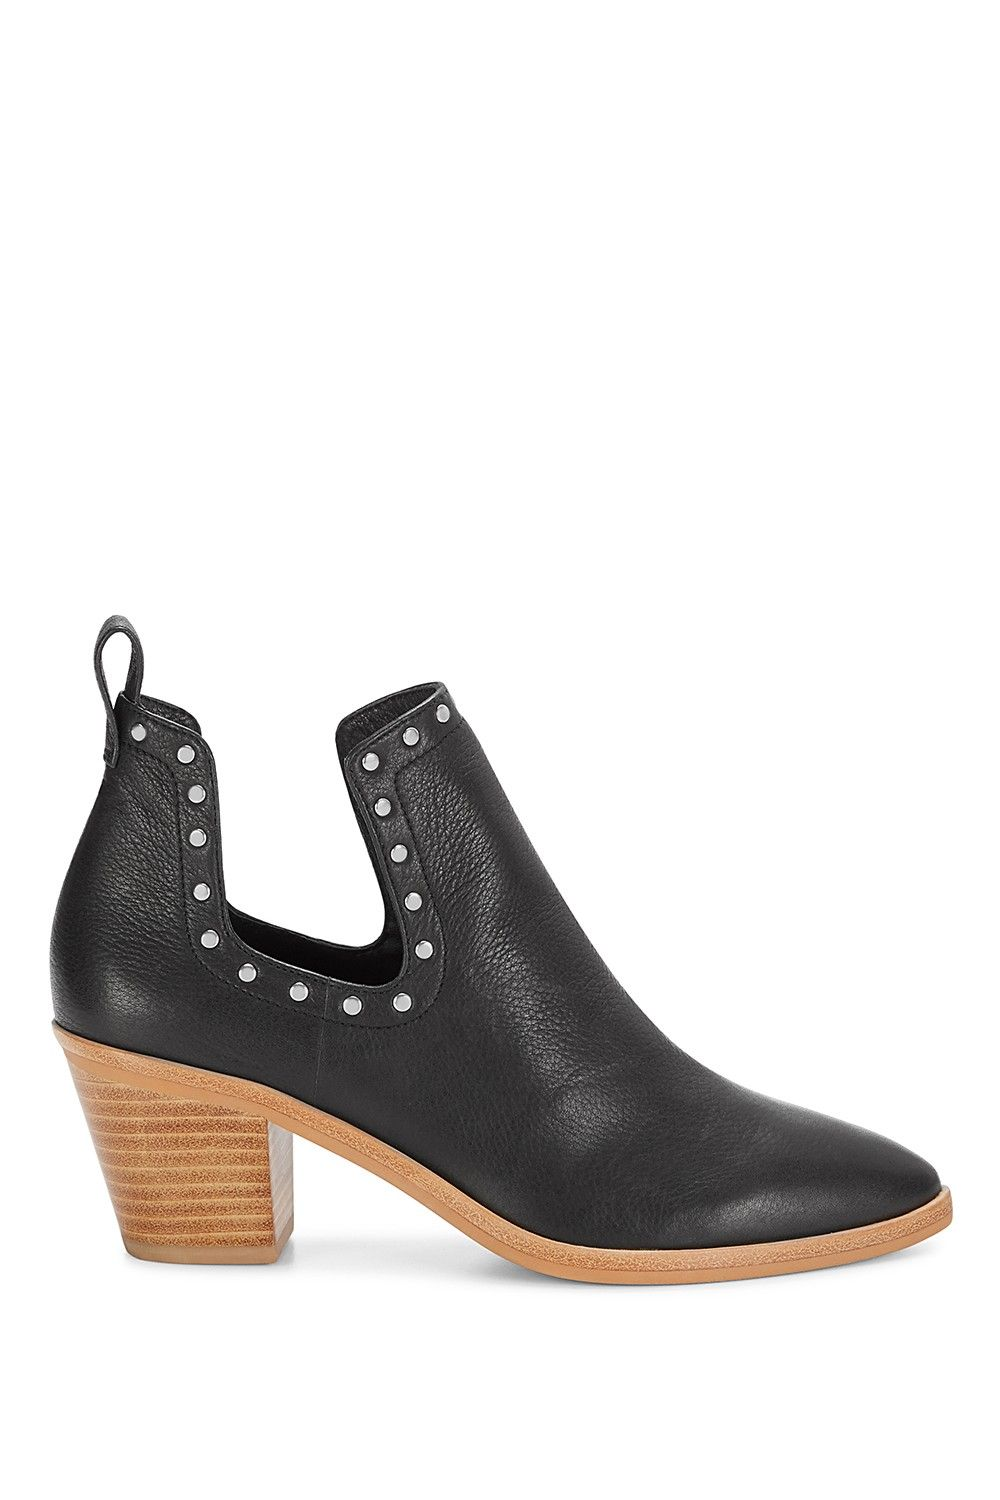 18560e9d074 Lana Bootie - Classic with a twist. These leather ankle booties ...